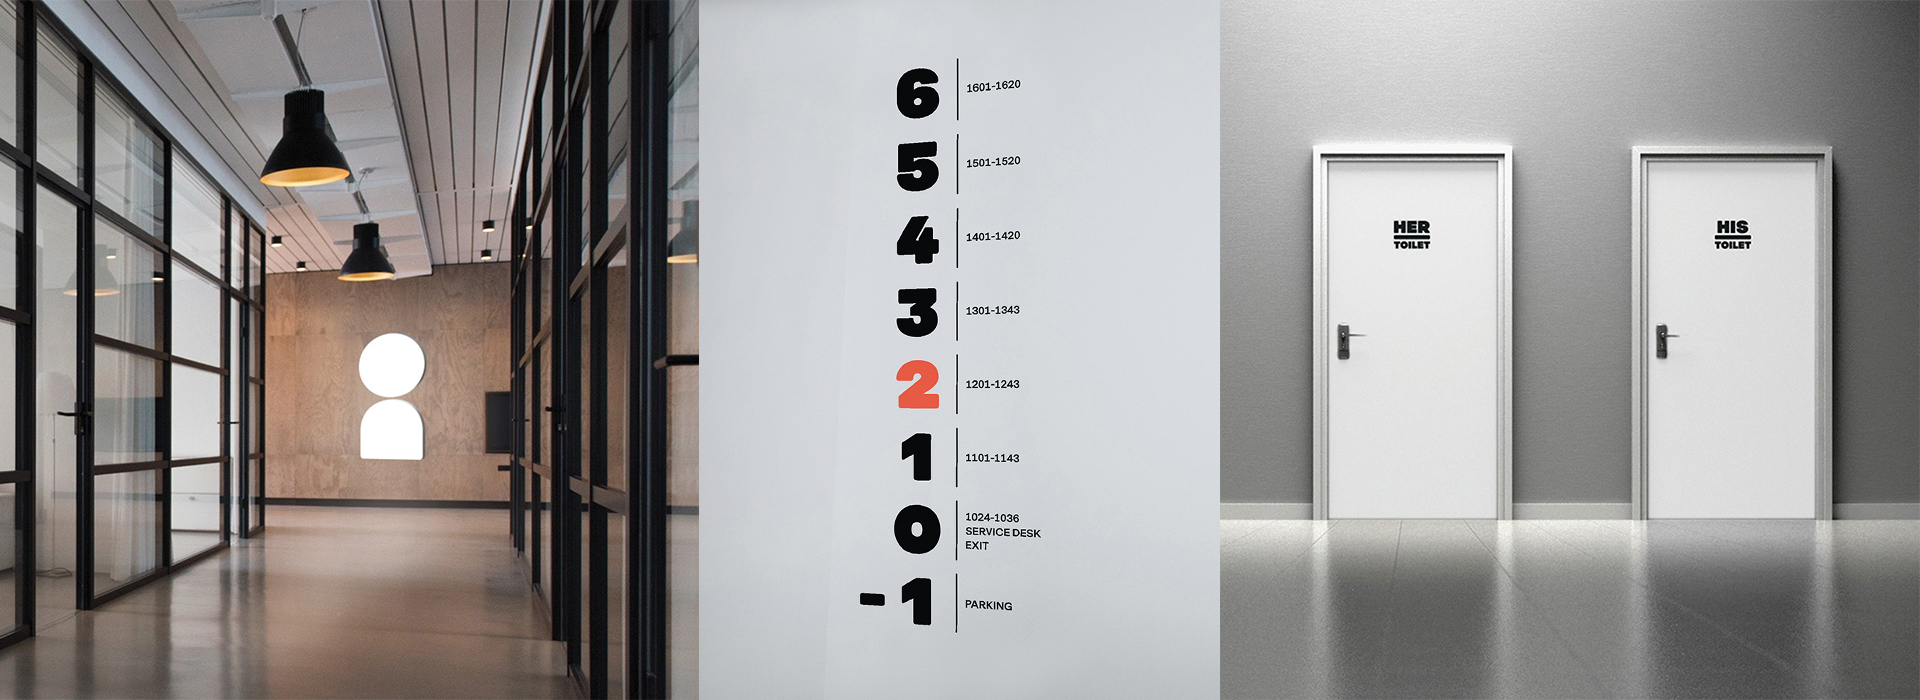 OurDomain Spatial Branding Signage & Wayfinding